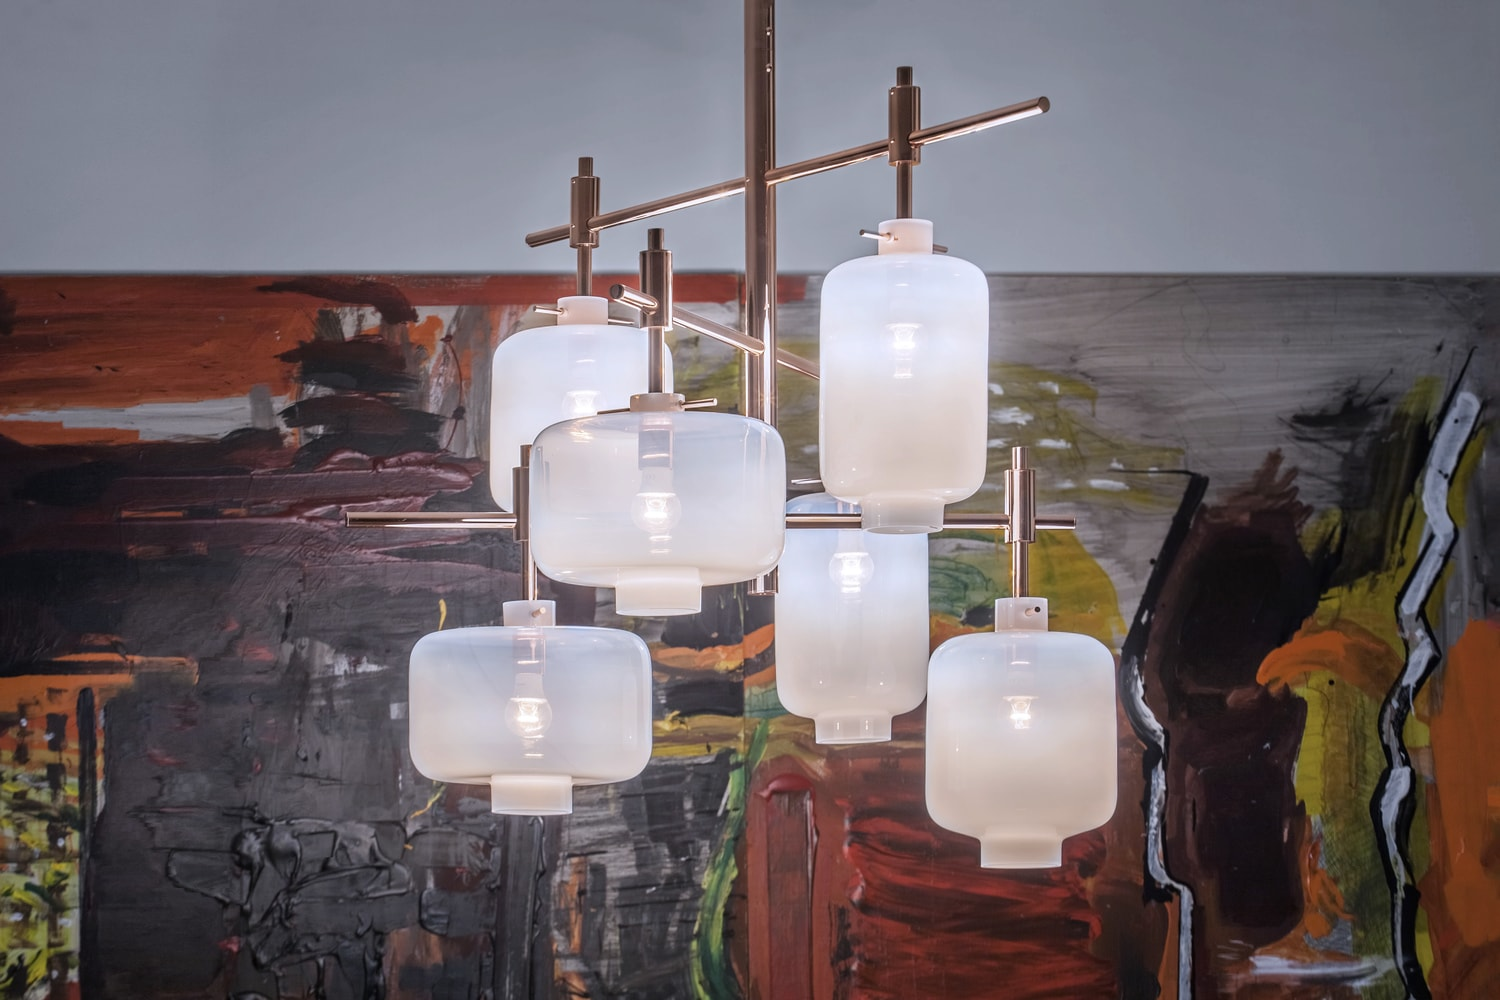 Site-specific lighting object for a private residence in Prague. Made of copper and opal glass. Designed and crafted in Czech Republic. Designed by Rony Plesl in cooperation with Jiri Krejcirik.